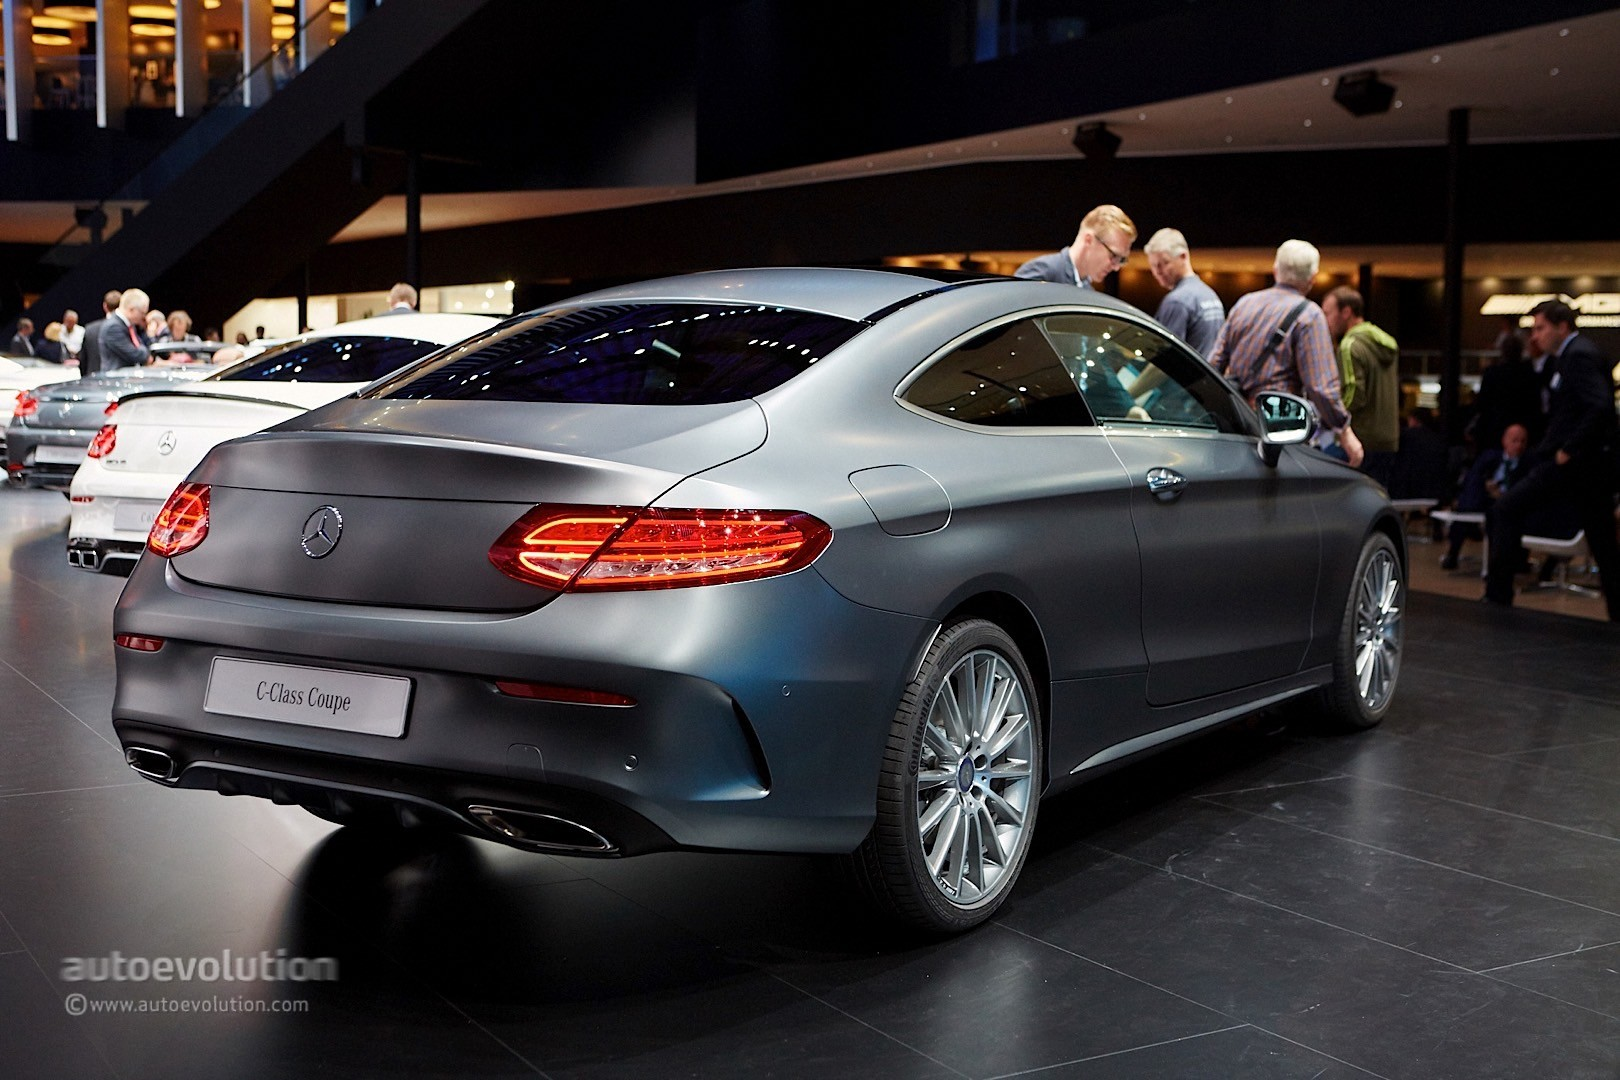 Mercedes Benz C Class Coupe and C63 Coupe Bring Sloped Roofline